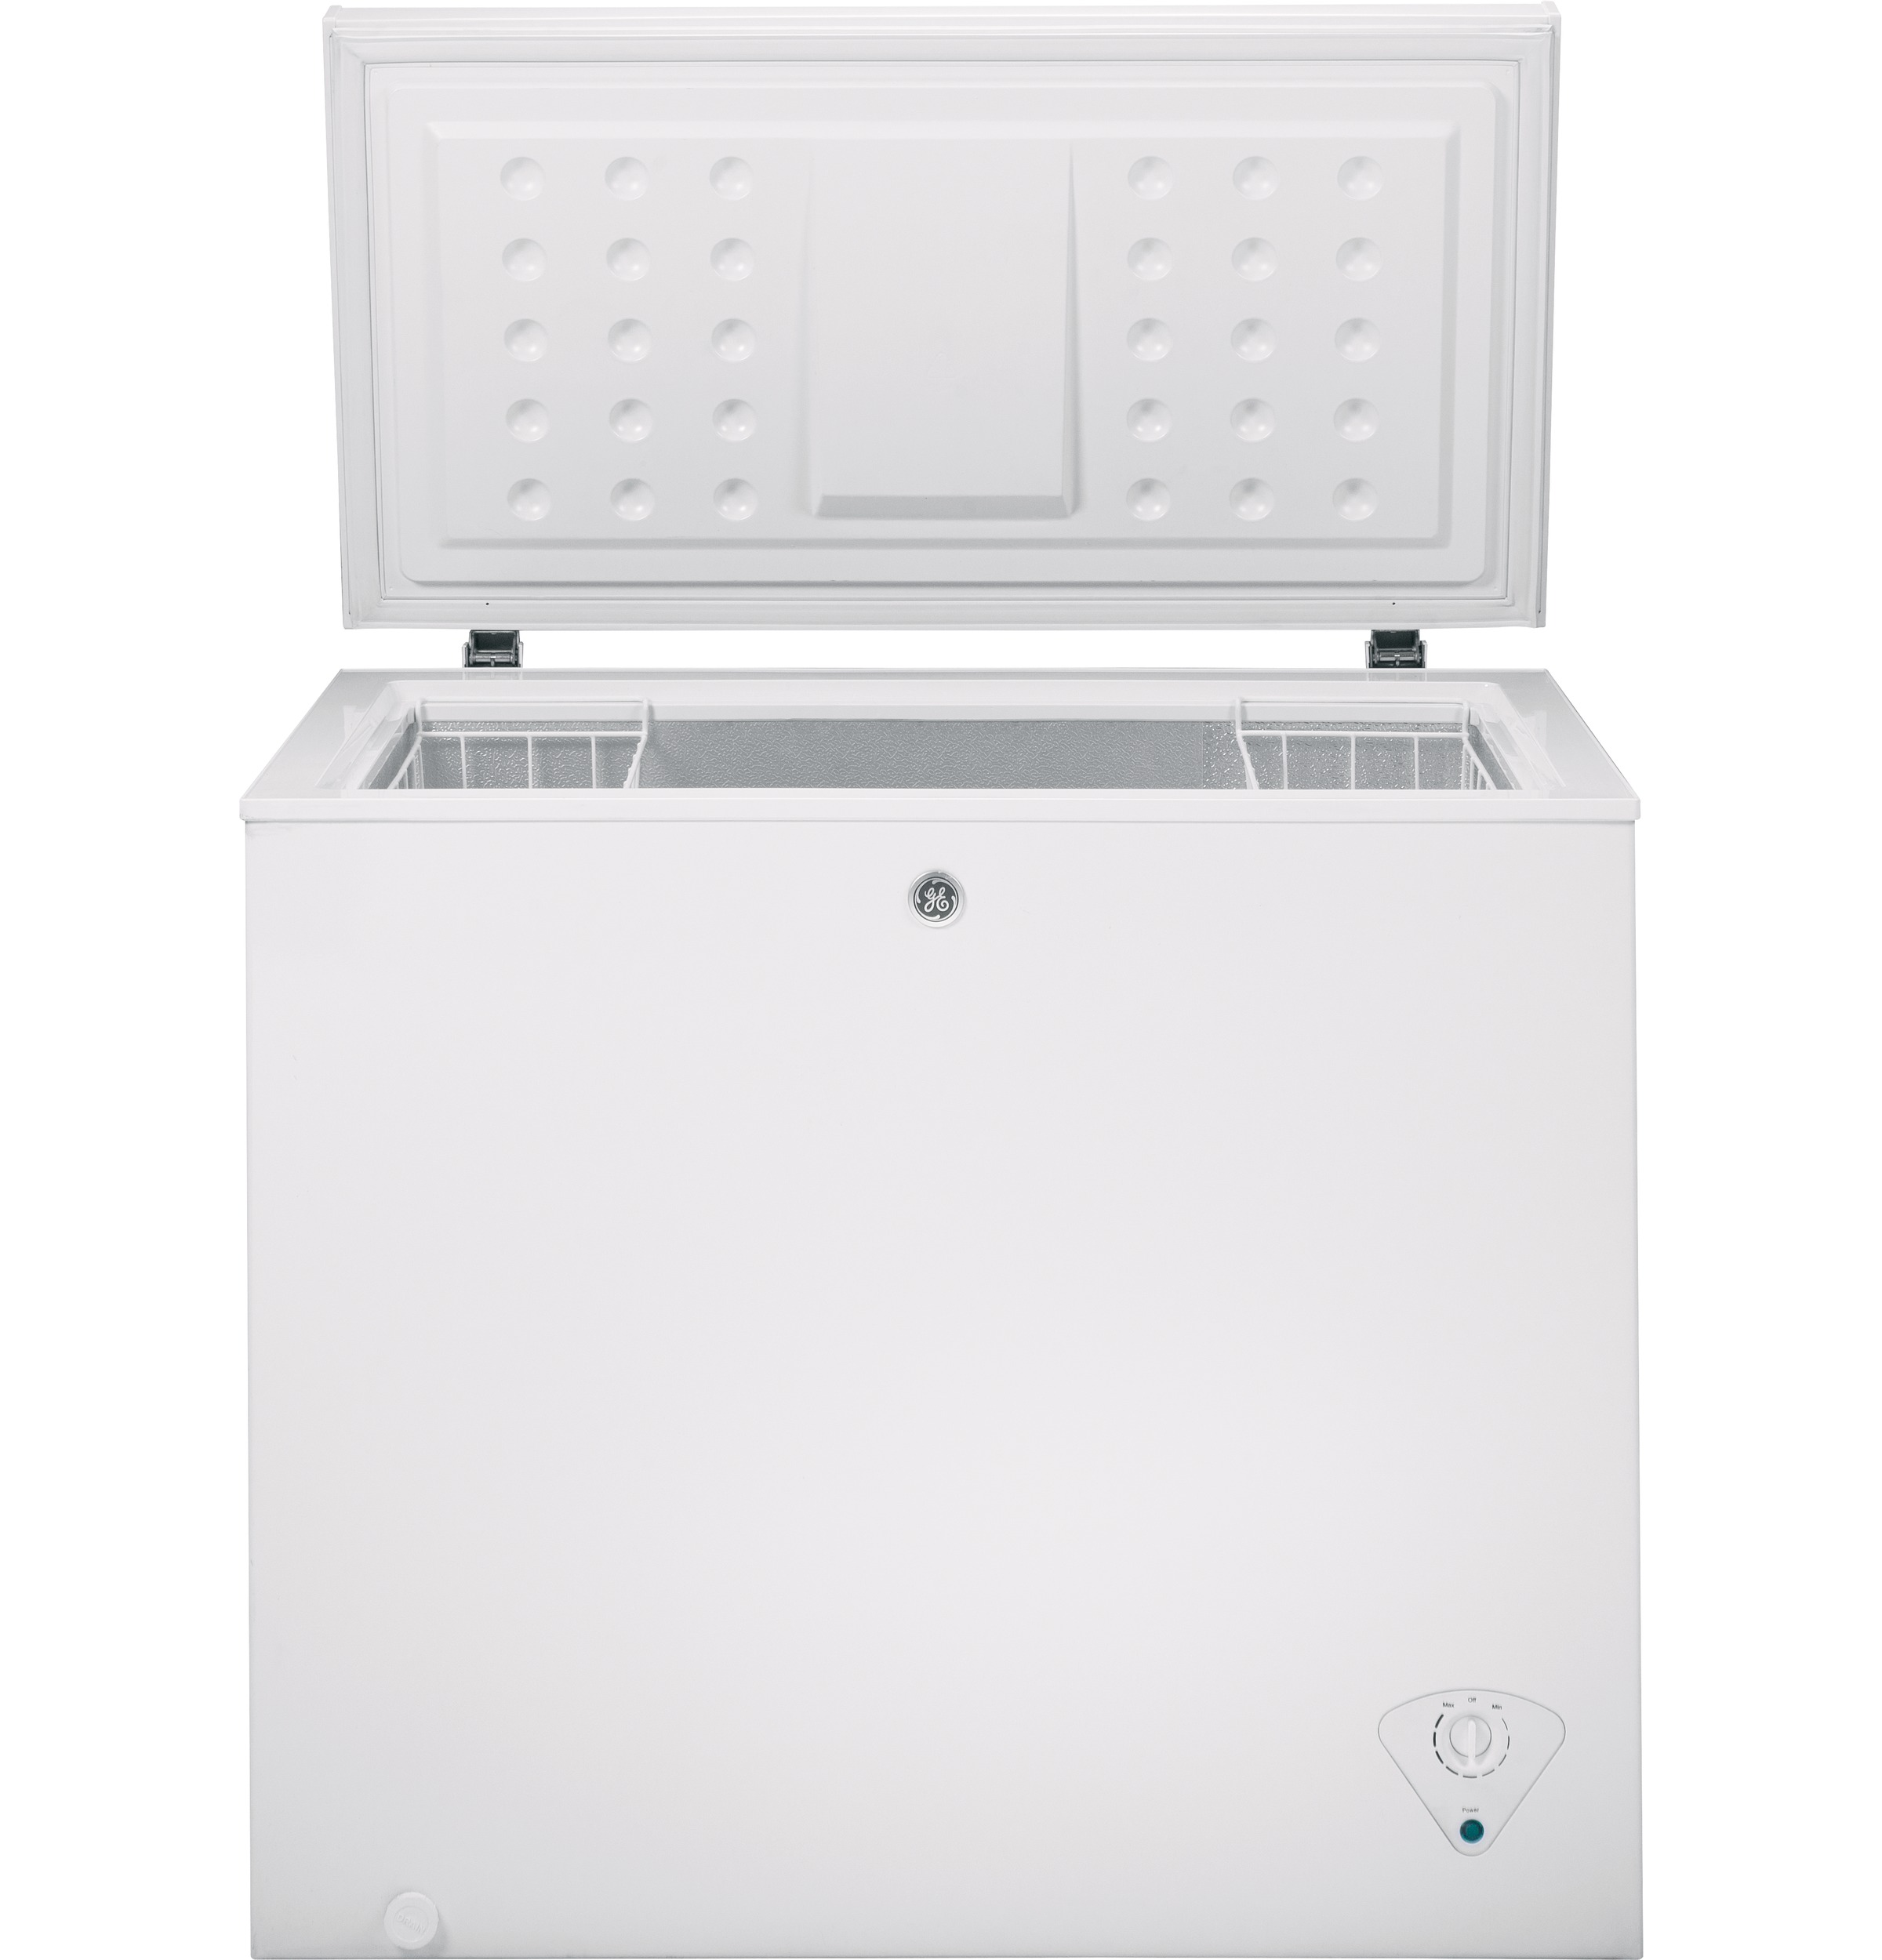 Model: FCM7SKWW | GE GE® 7.0 Cu. Ft. Manual Defrost Chest Freezer